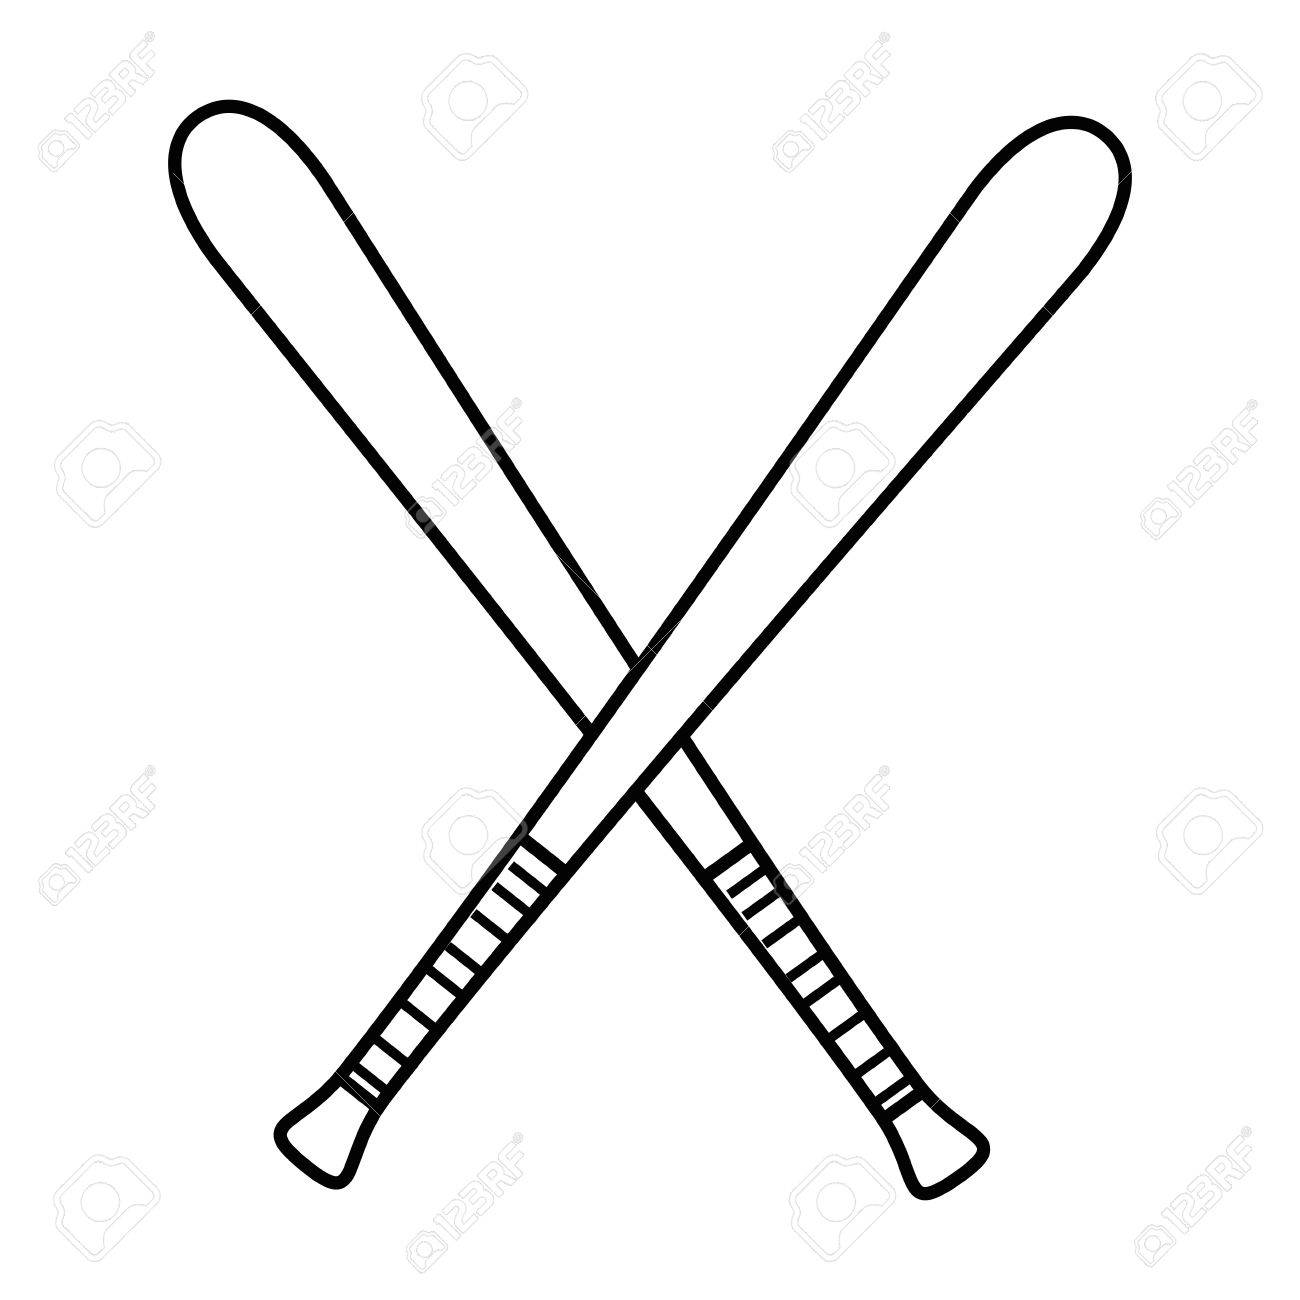 baseball bats crossed icon over white background vector illustration rh 123rf com